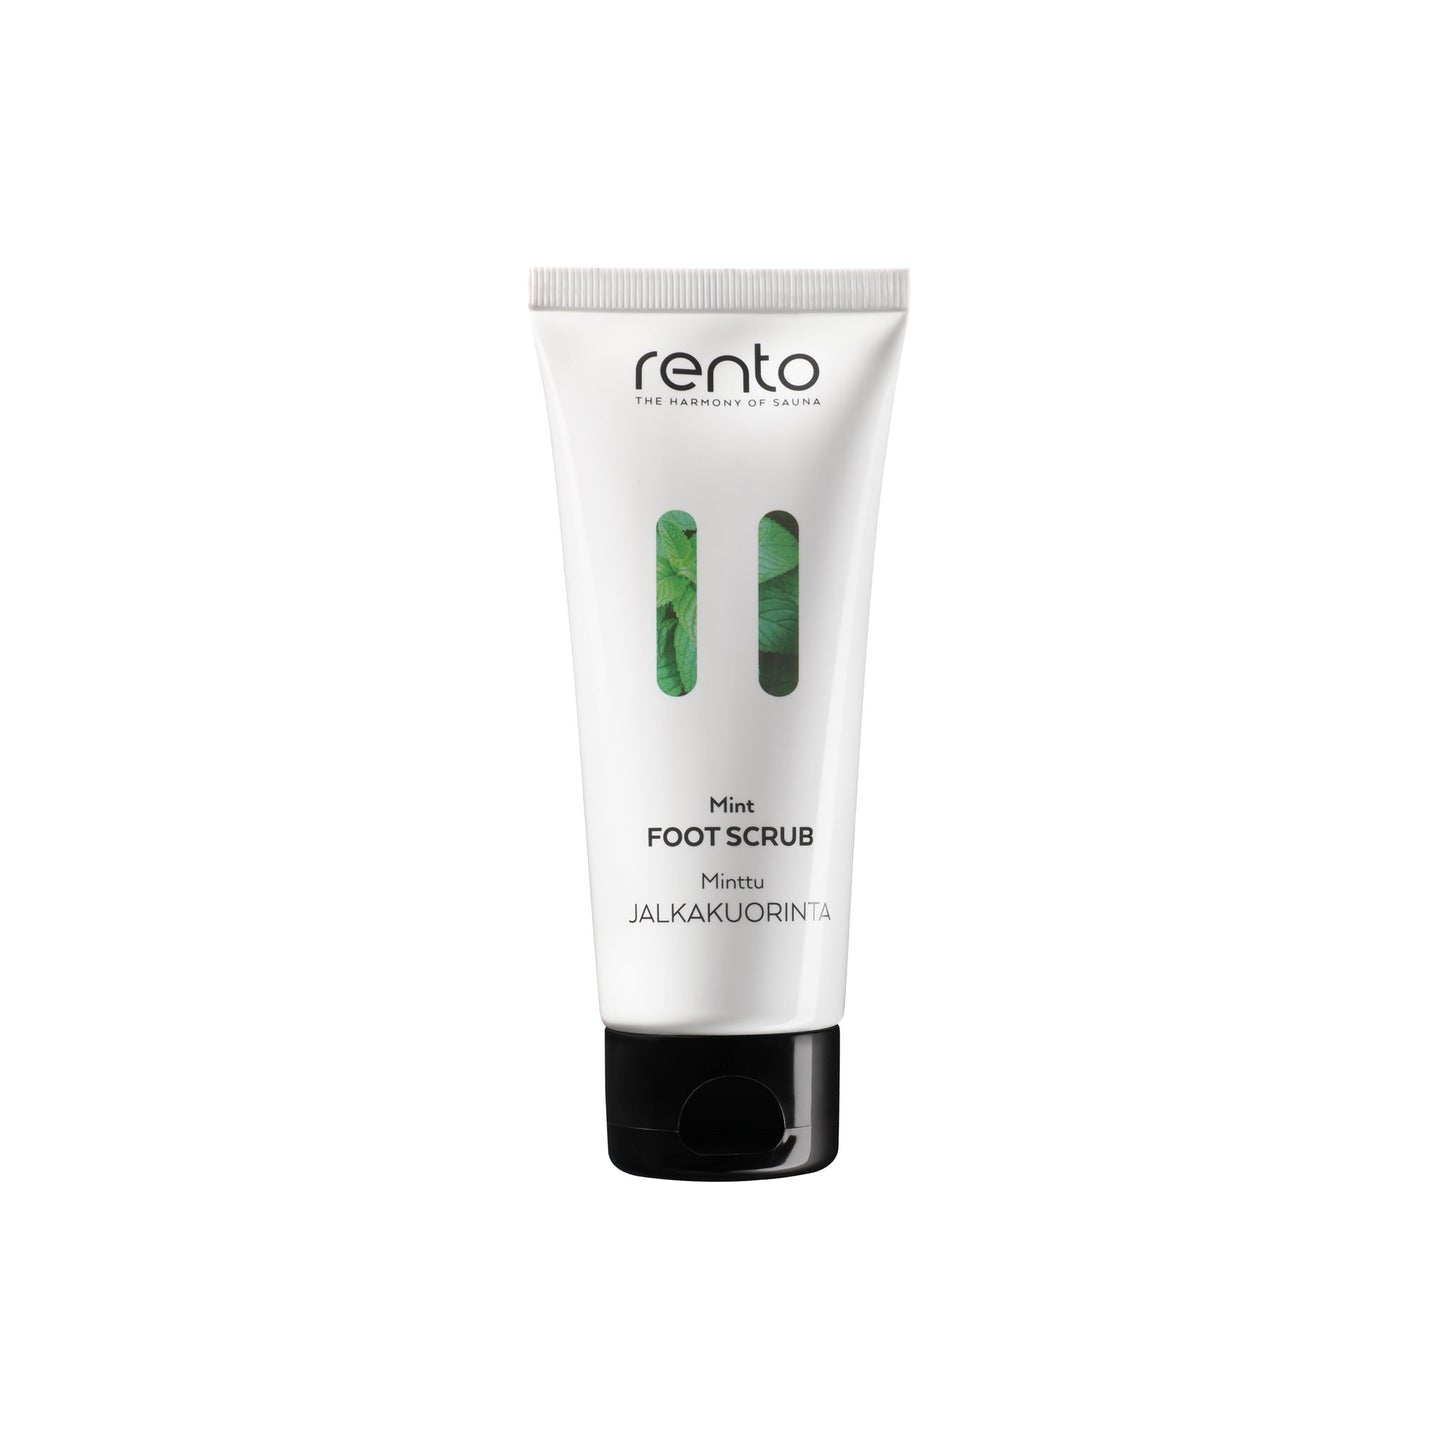 Mint Foot Scrub 100ml by Rento | Finnmark Sauna Default Title Foot Scrub Finnmark Sauna